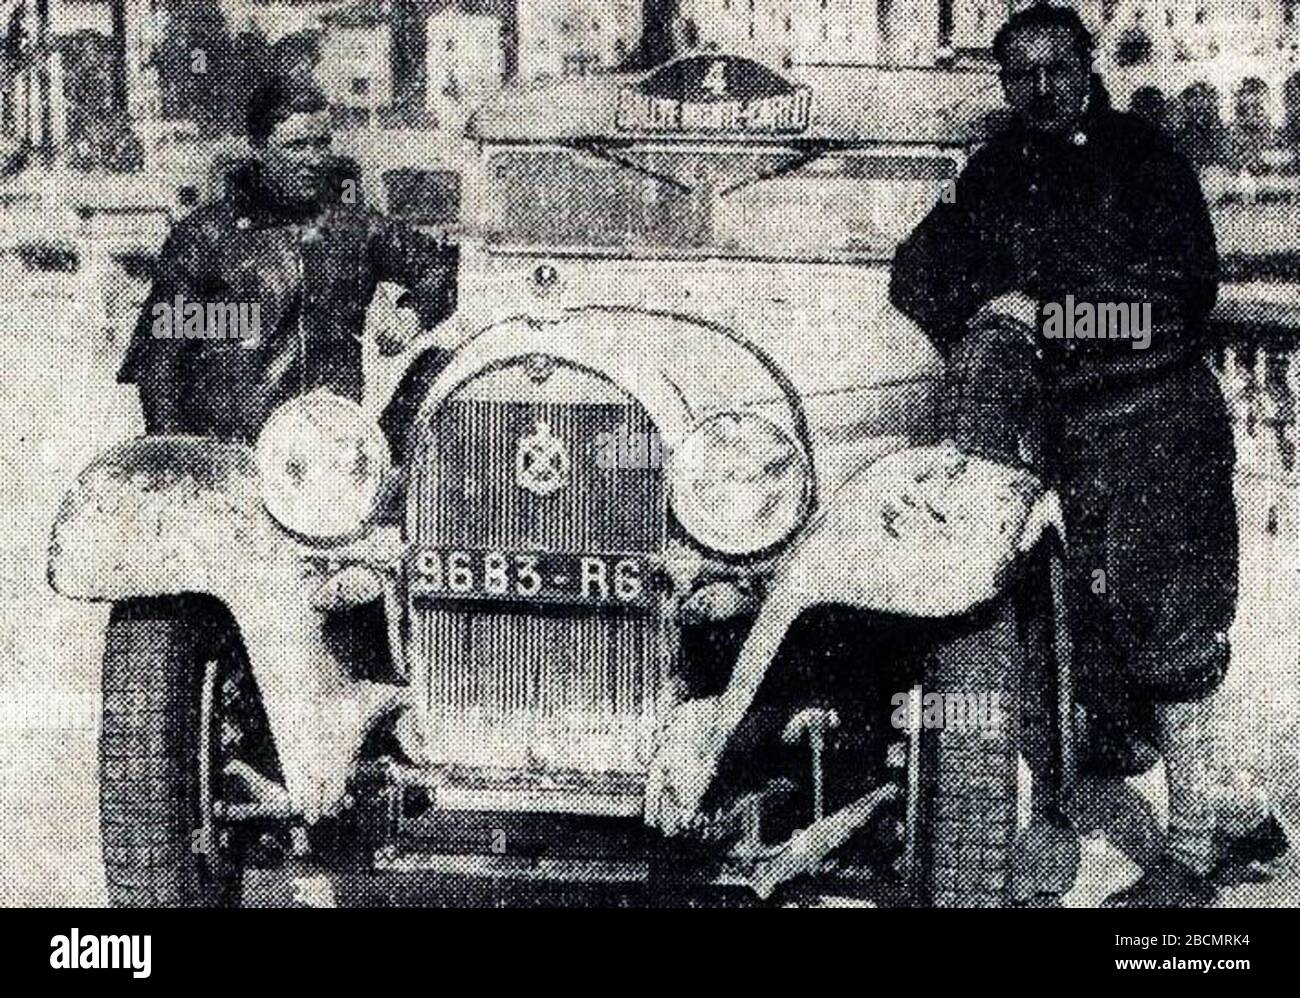 """""""Français: Rallye Monte Carlo 1934, victoire de Gas (G.) et Trévoux (D.) sur Hotchkiss.English: Entry #4 in the 1934 Rallye Monte Carlo is a Hotchiss AM 80 S 3,485 ccm (license 9683 RT), driven by Louis Gas (left in picture) and Jean Trévoux (to the right).  They had started in Athens[1] and were also the winner this year!; 16 October 2017; L'Auto-vélo, 26 janvier 1934; L'Auto-vélo; """" Stock Photo"""